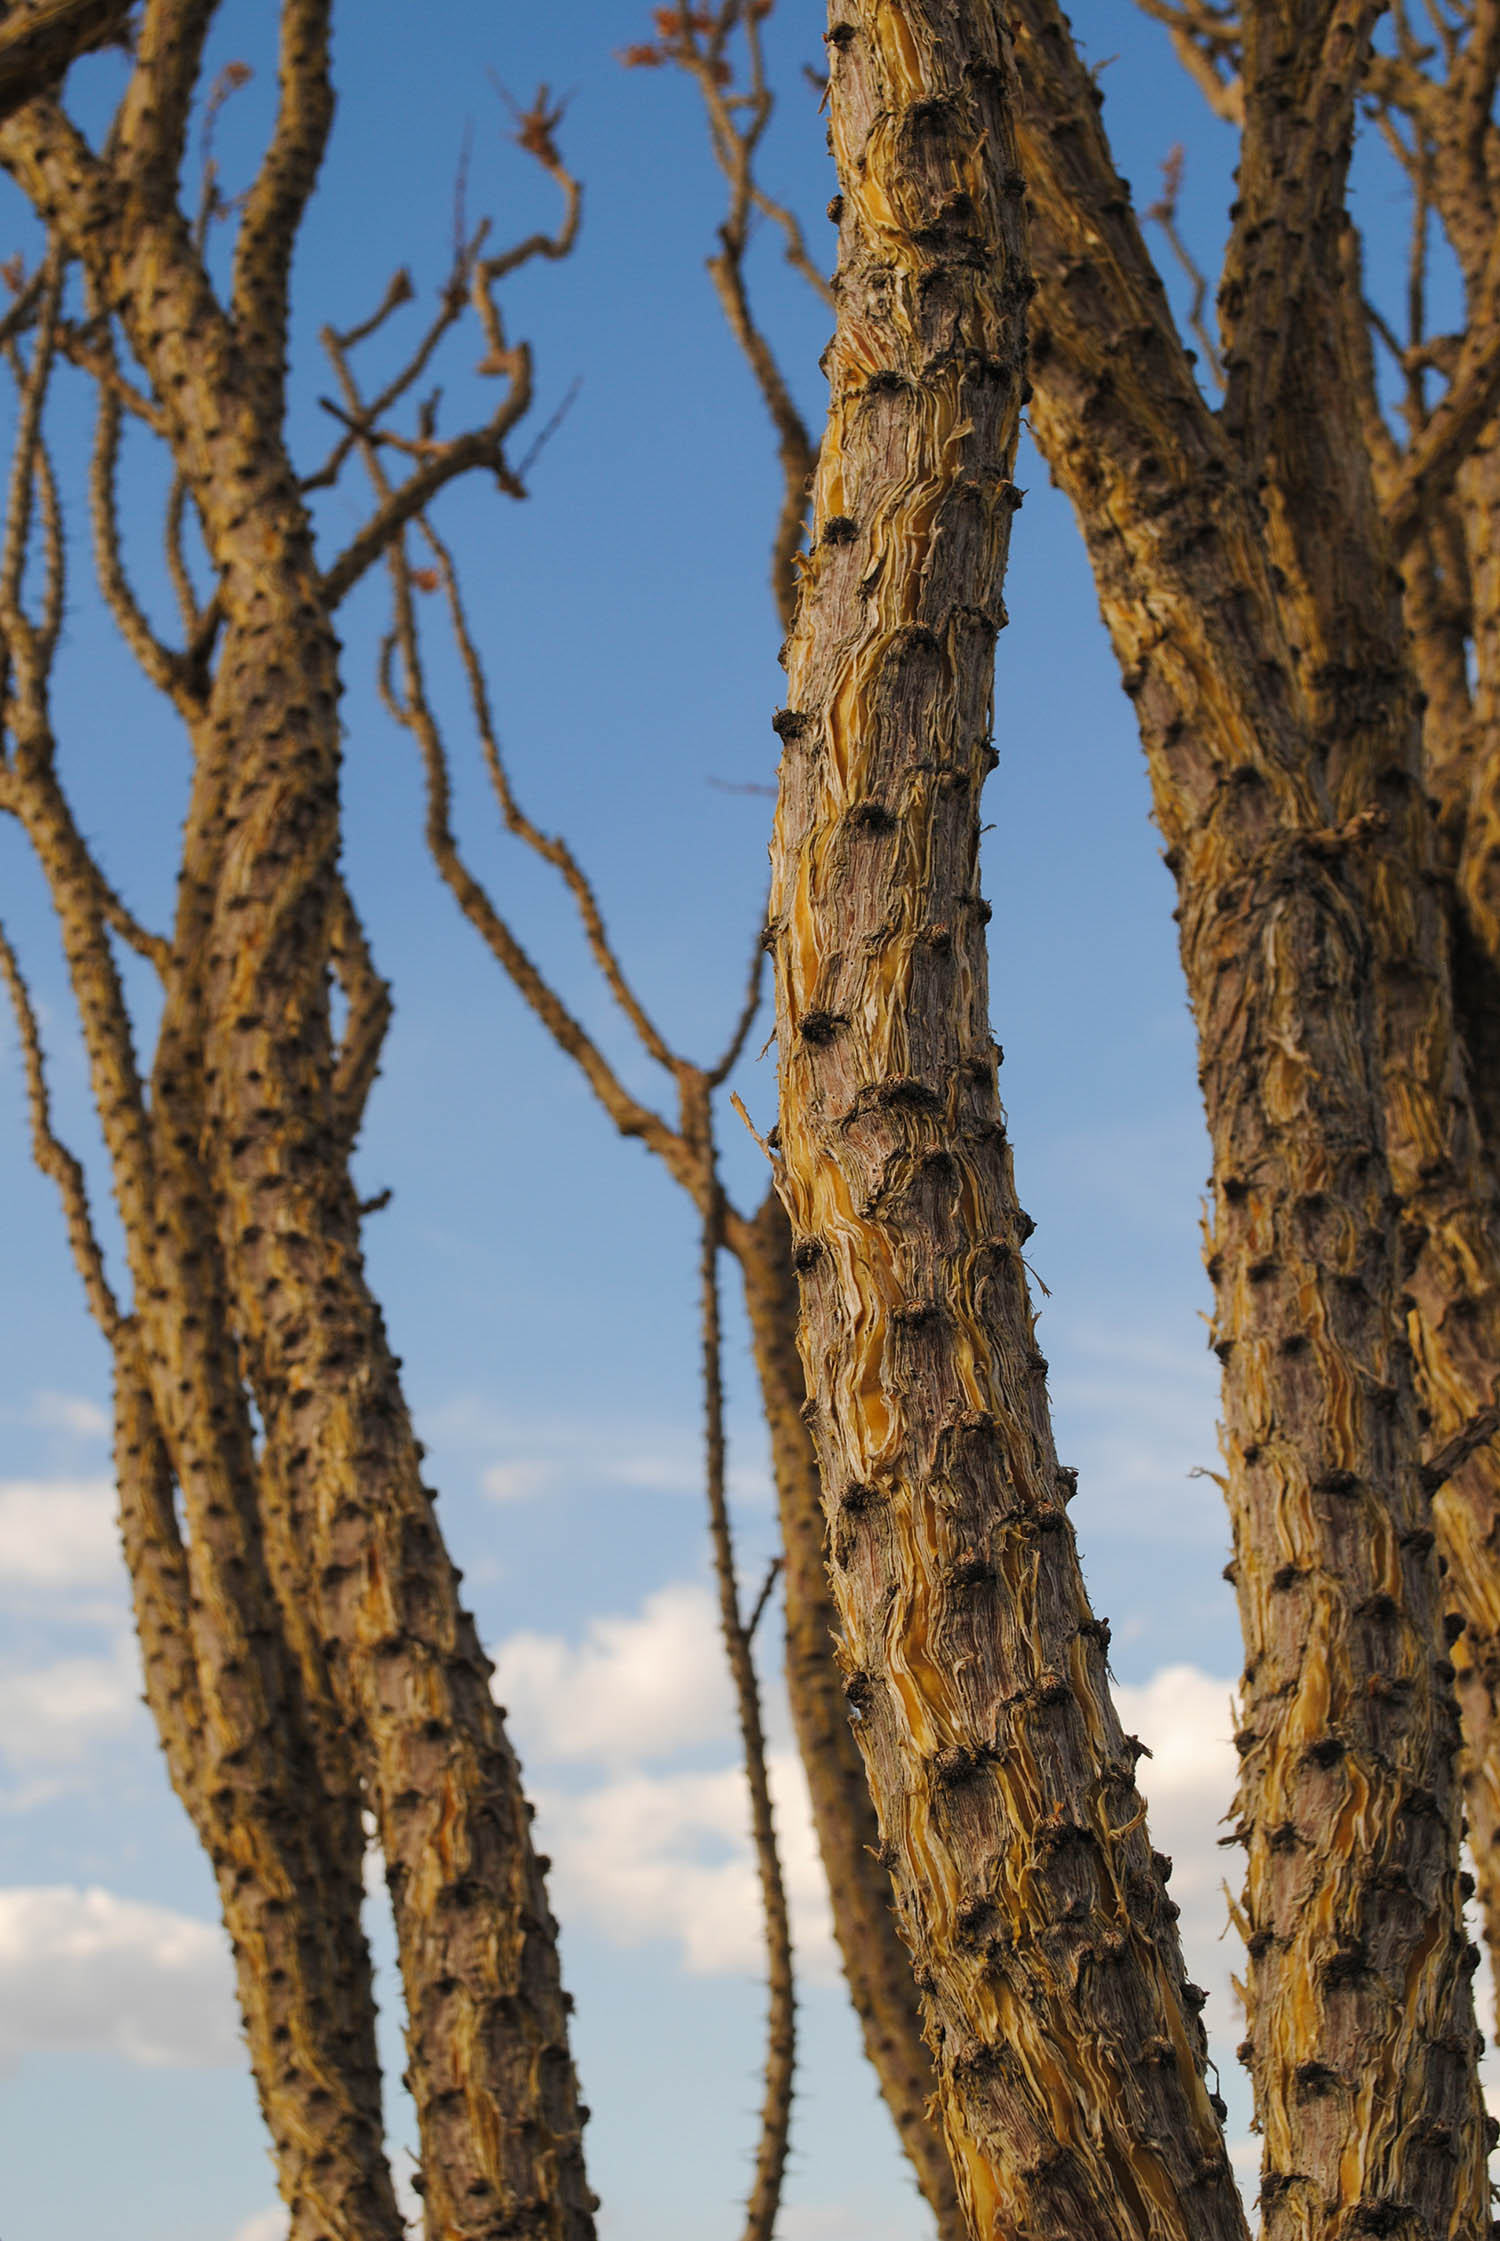 A close up of the cracked ocotillo branches